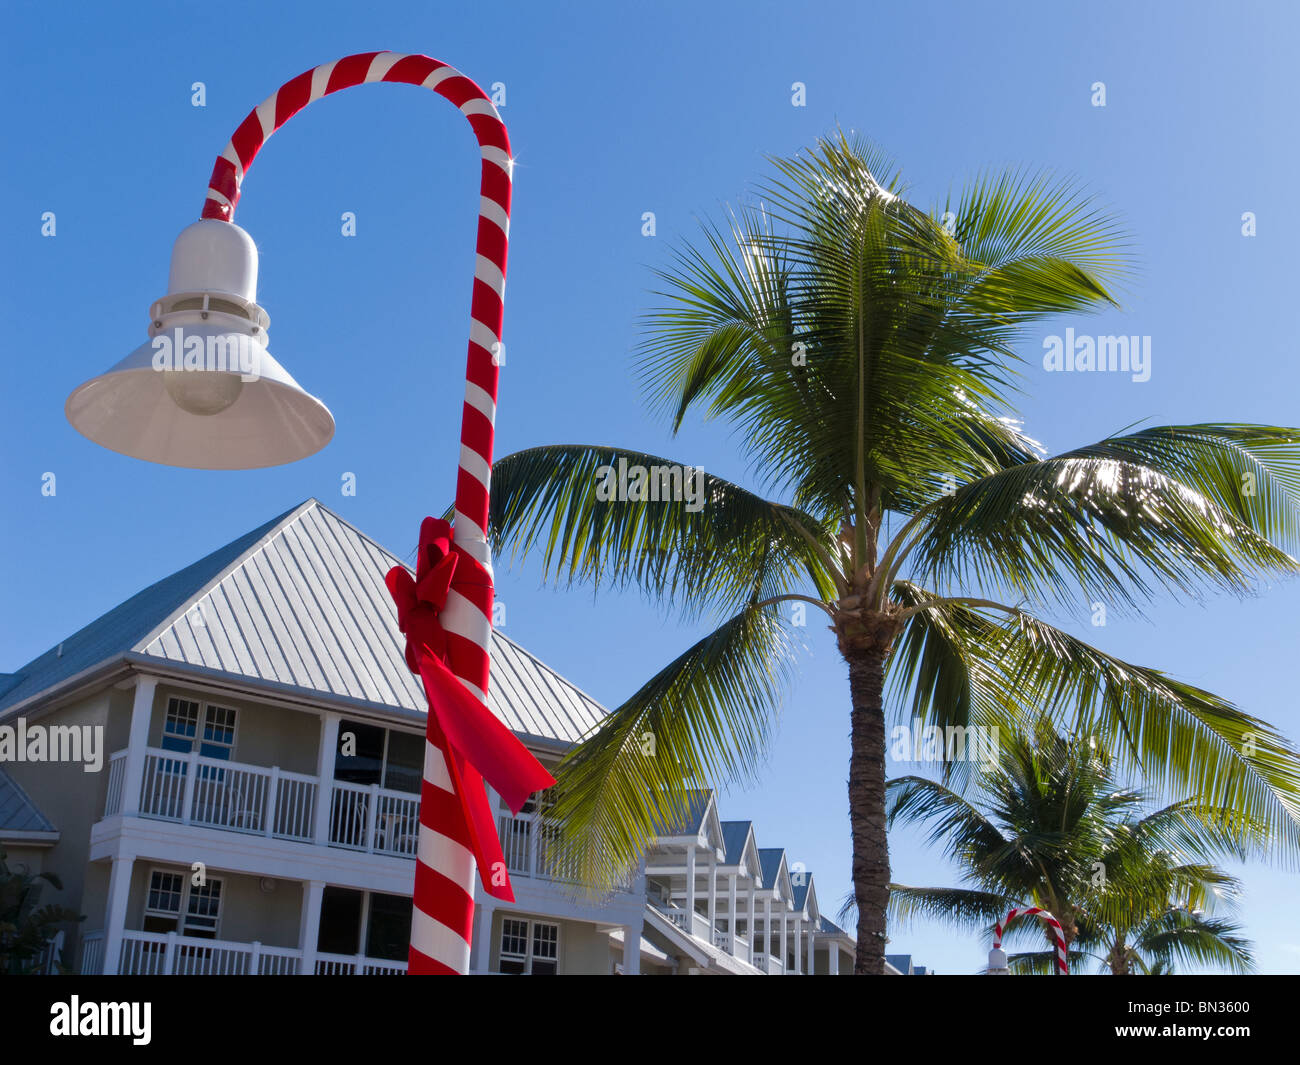 Christmas decorations turn street lamp into candy cane in ...